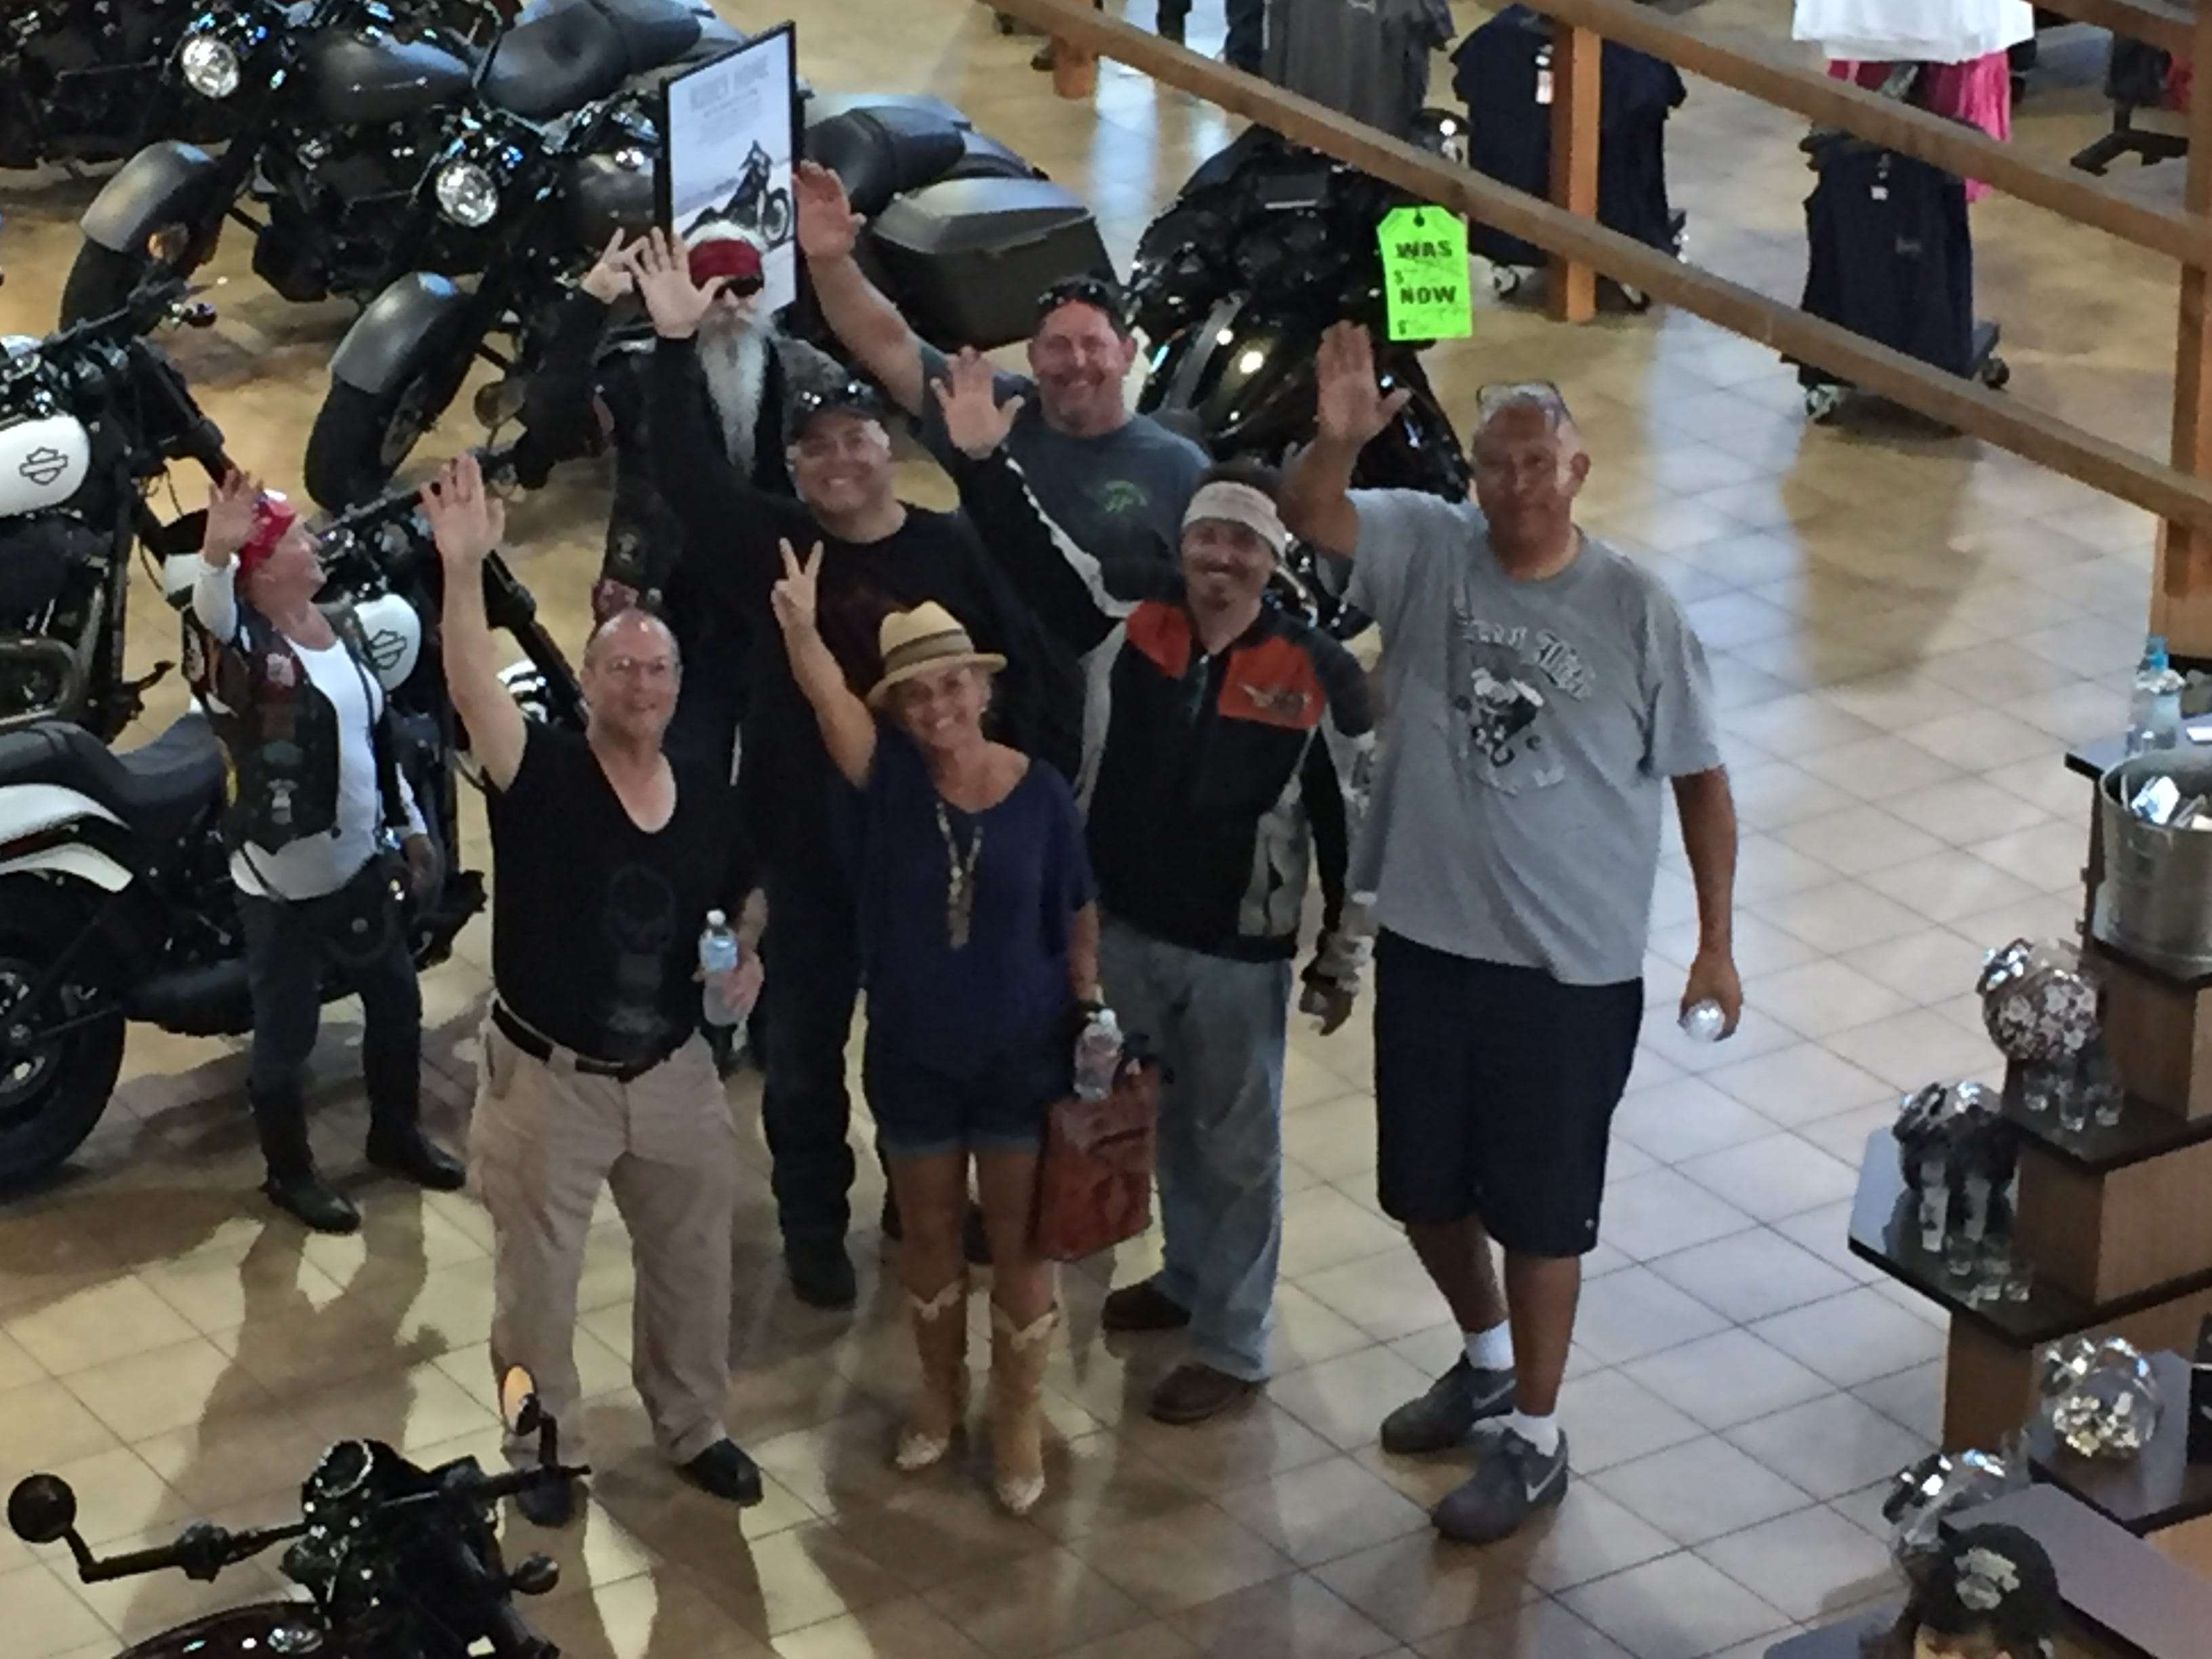 Riders from the San Diego to Milwaukee ride wave from the floor of Harley-Davidson World in Oklahoma City, which hosted about 150 people at a welcome party on Aug. 24, leg 4 of the nine-day trip to Milwaukee.